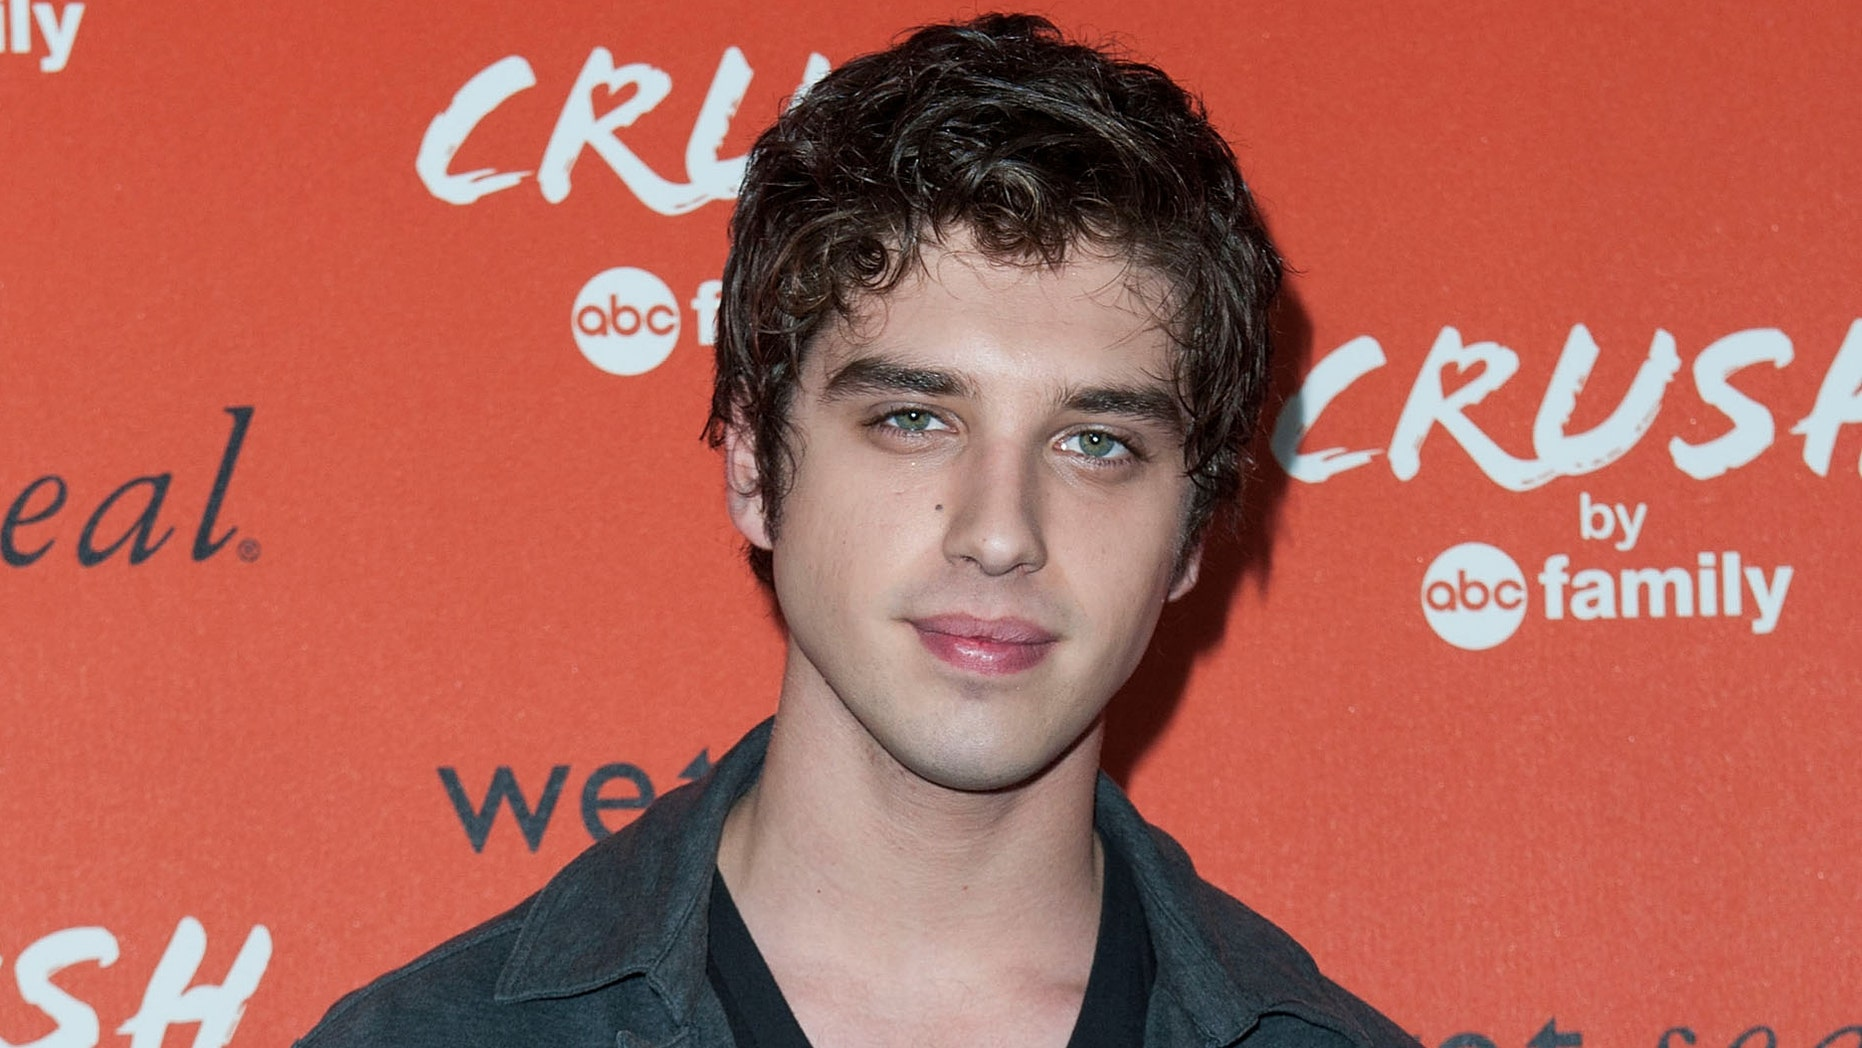 David Lambert at the Launch Celebration Of Crush By ABC Family on November 6, 2013 in West Hollywood, California.